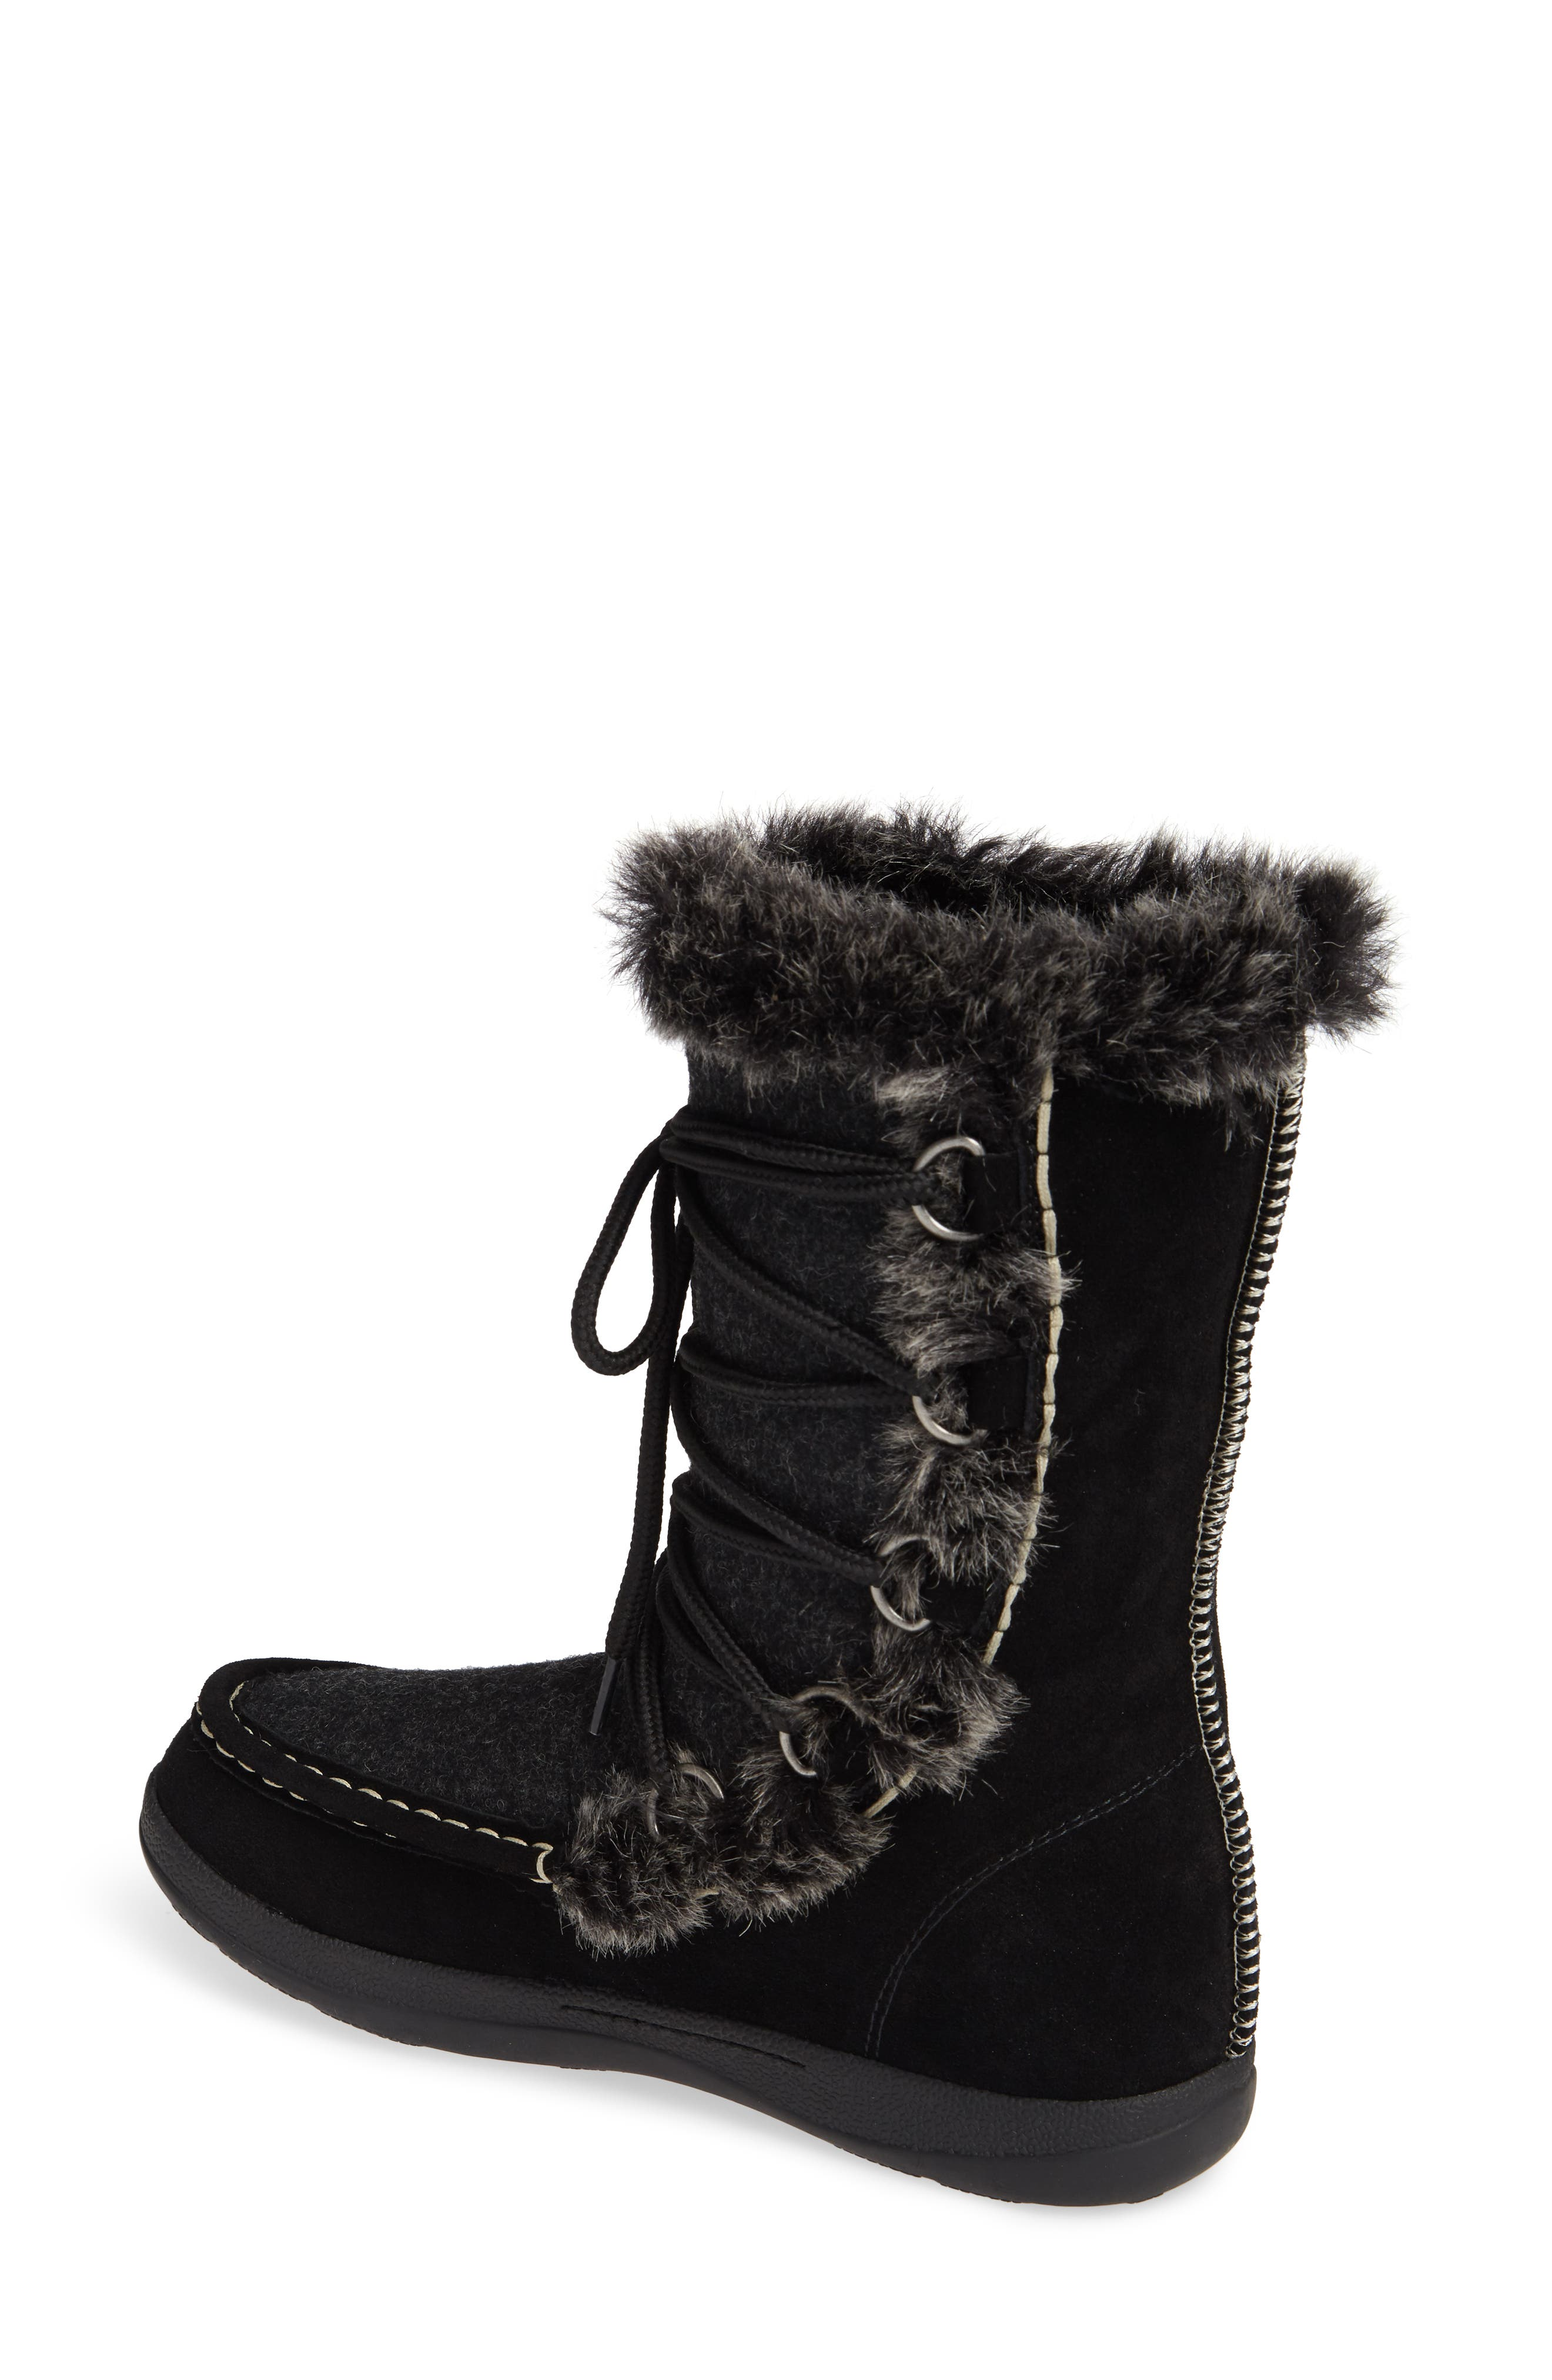 Lace Up Bootie,                             Alternate thumbnail 2, color,                             BLACK WOOL